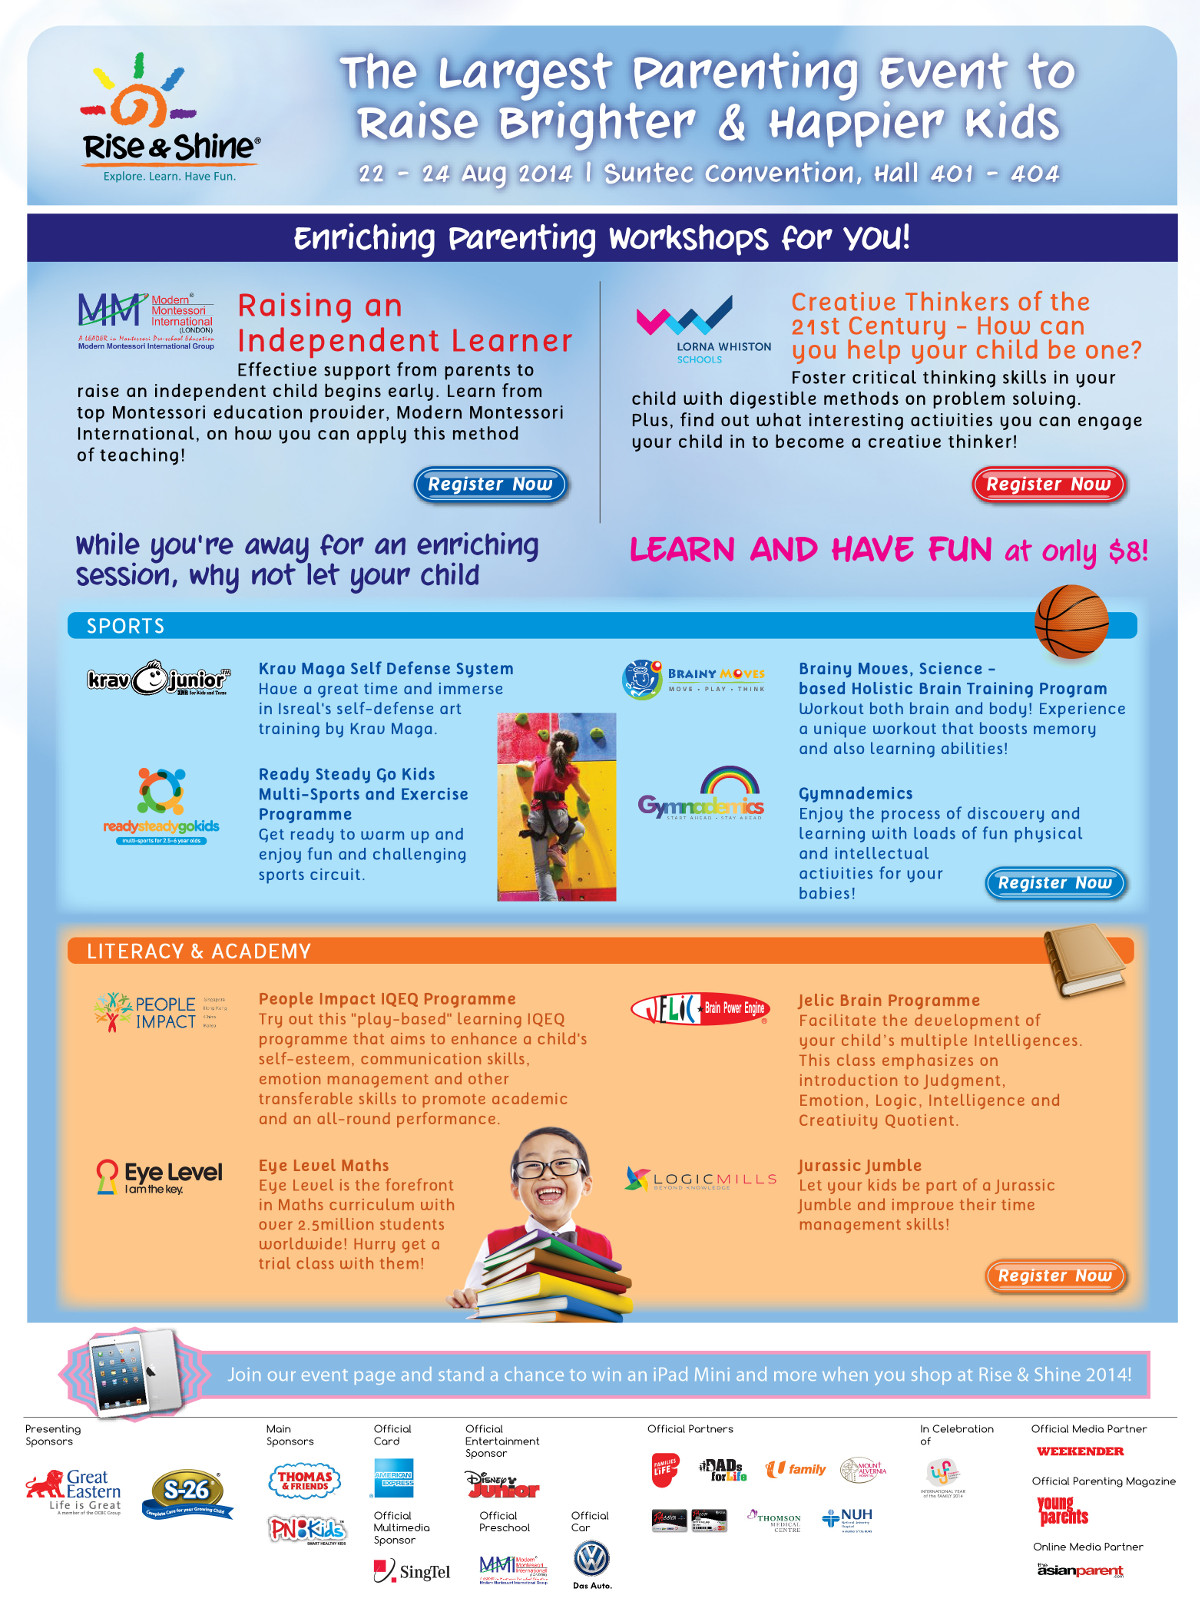 The Largest Parenting Event to Raise Brighter & Happier Kids from 22 to 24 Aug 2014 at Suntec Convention Hall 401 - 404. Enriching Parenting Workshops for you! Raising an Independent Learner by MMI. Creative Thinkers of the 21st Century - How can you help your child be one? by Lorna Whiston. Join our event page and stand a chance to win an iPad Mini and more when you shop at Rise & Shine 2014!